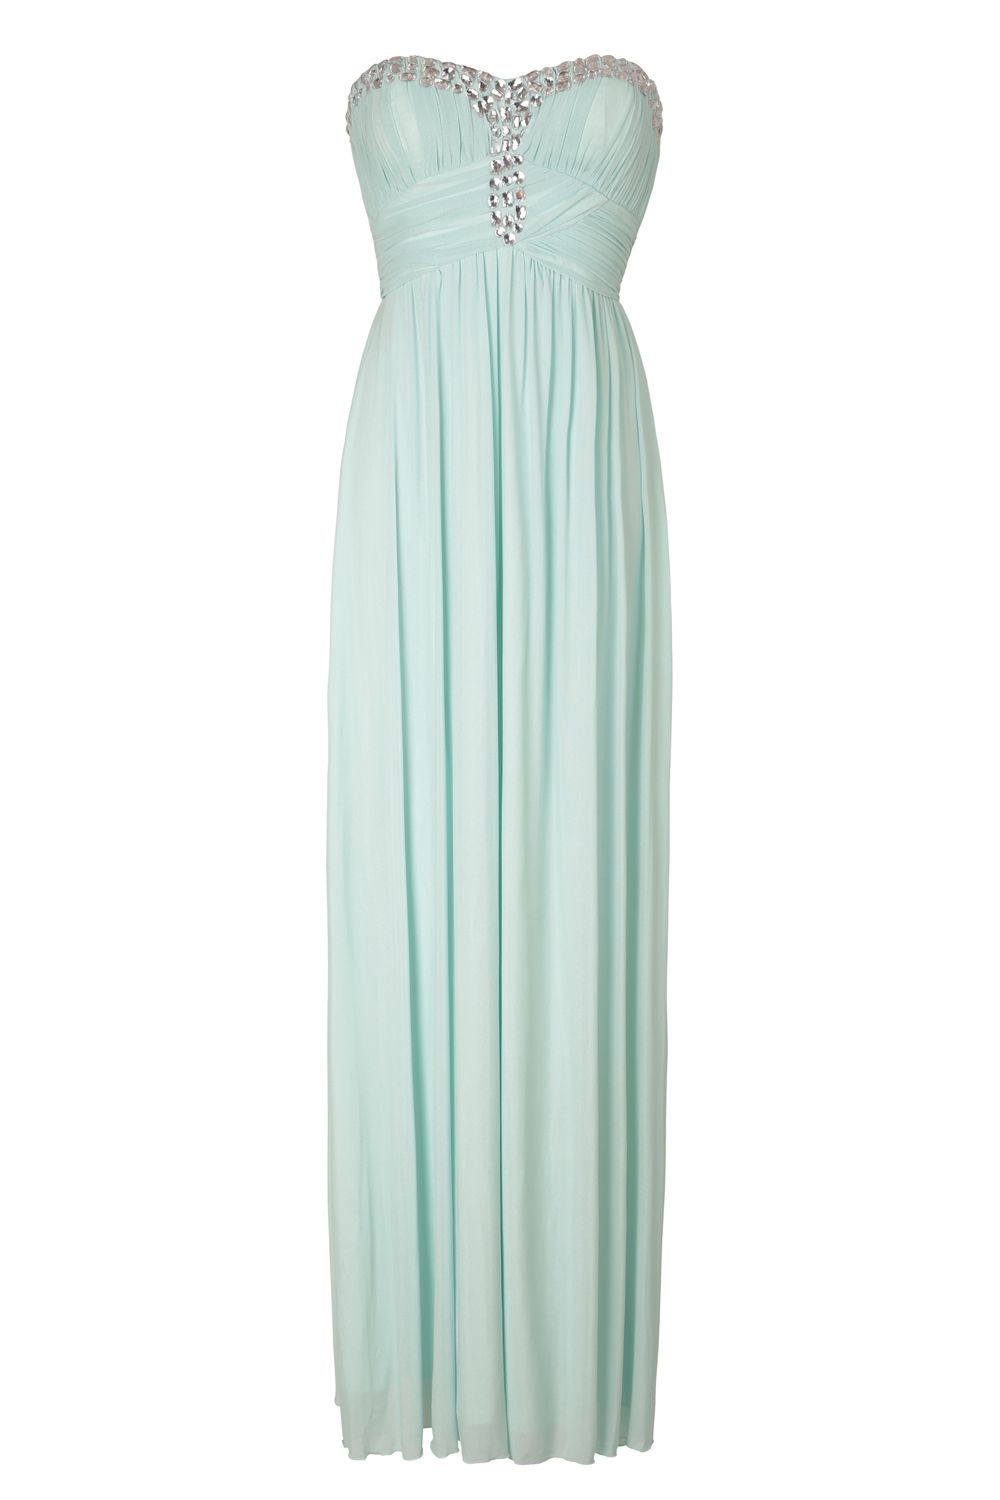 NAZZ COLLECTION MIA AQUA MINT SWEETHEART CRYSTAL BUSTIER MAXI GOWN ...